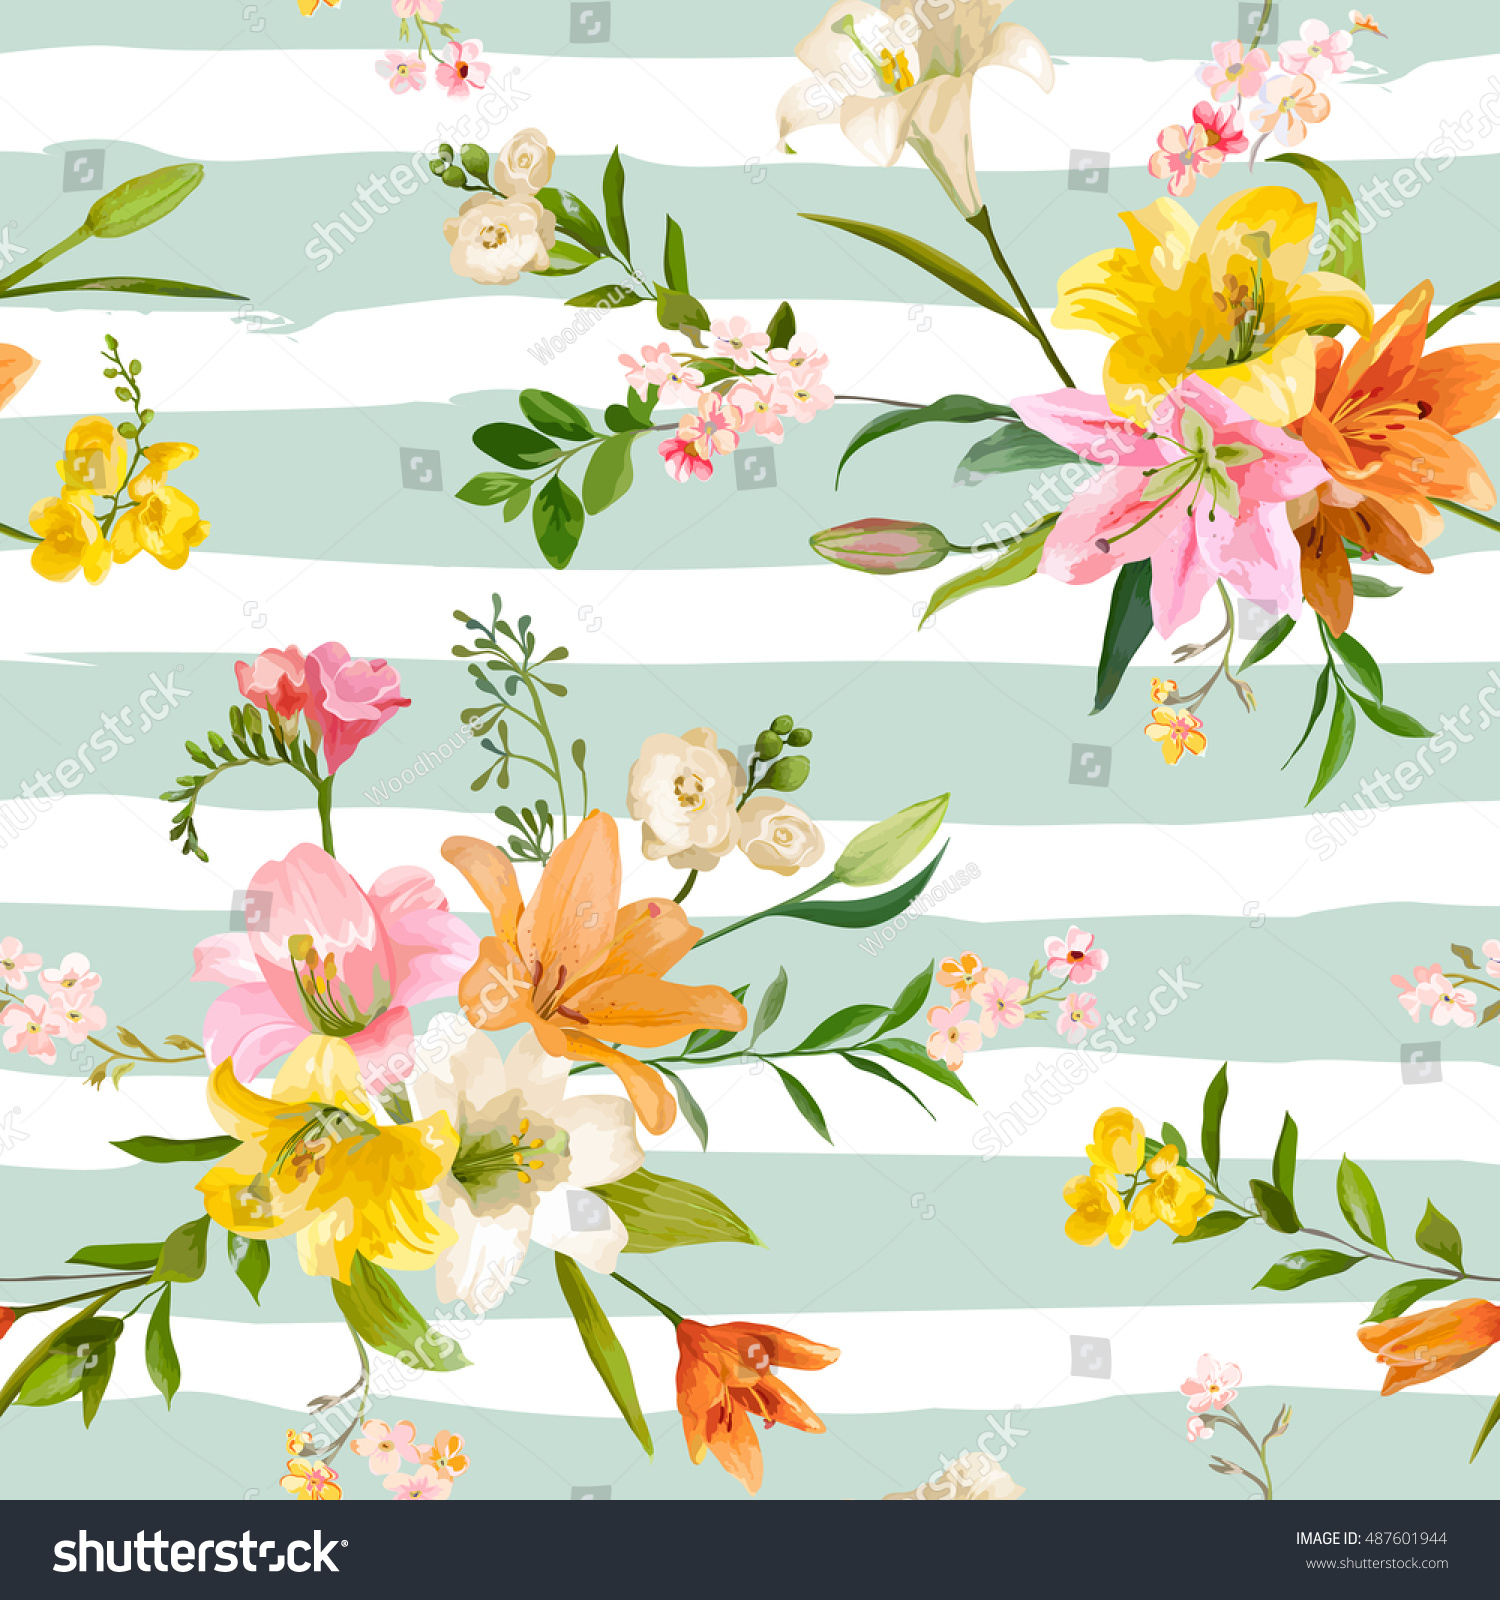 Vintage Spring Flowers Backgrounds Seamless Floral Stock Vector